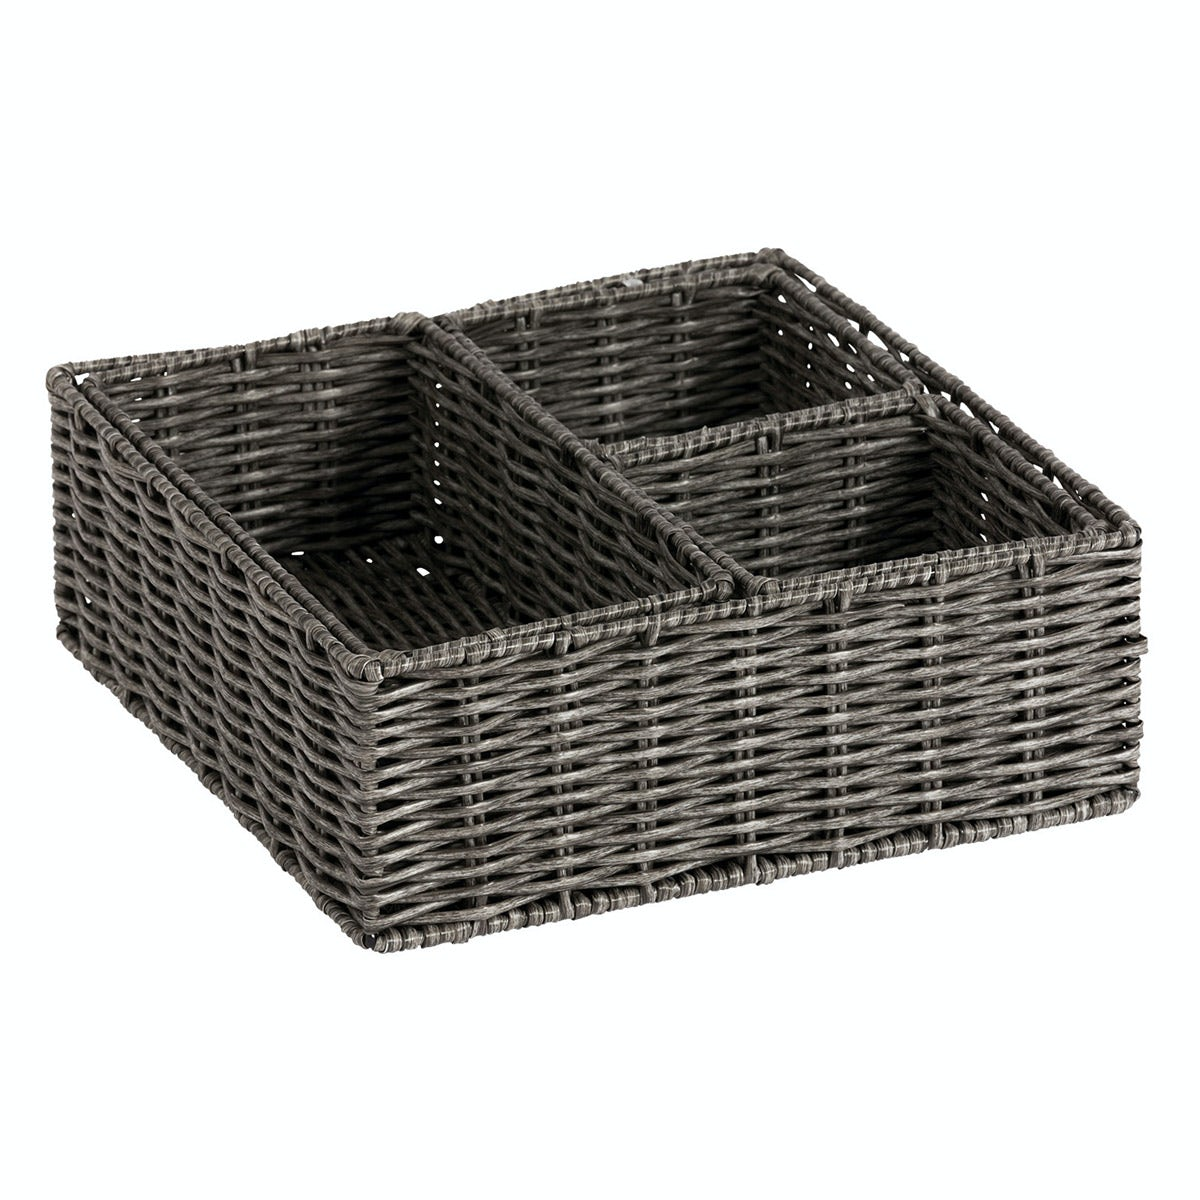 Showerdrape Matteo set of 4 storage baskets